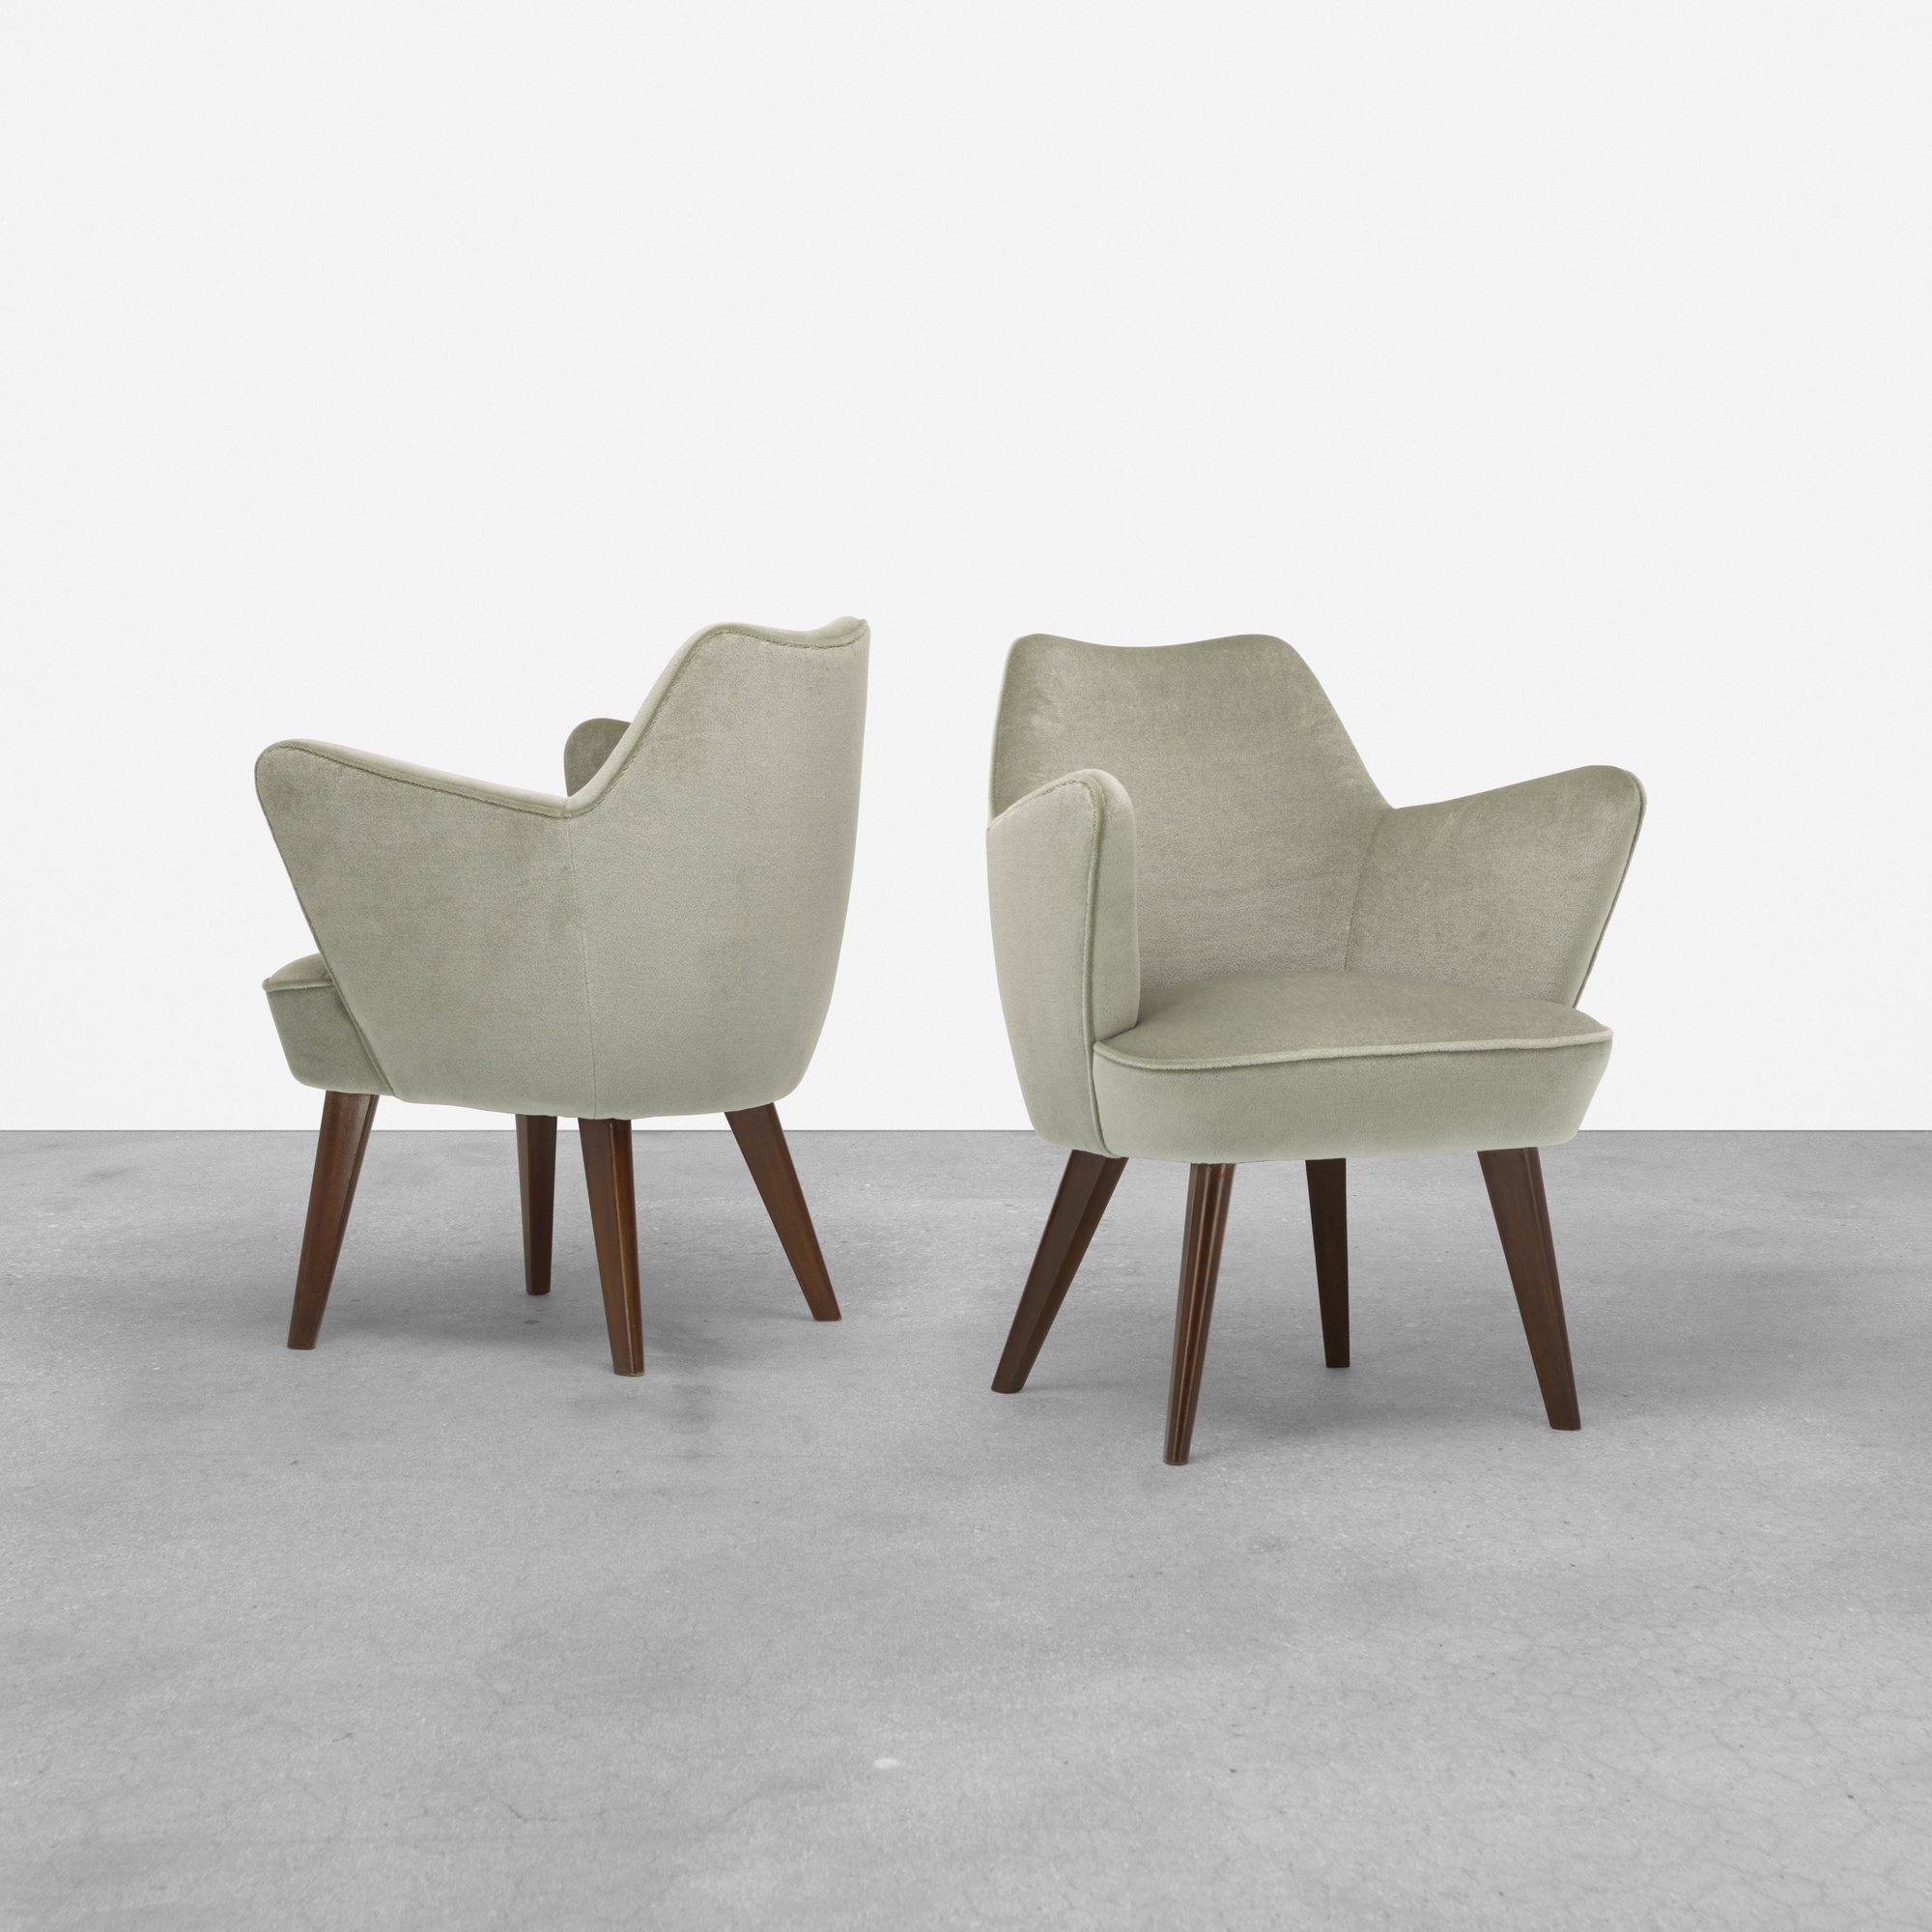 233: Gio Ponti / pair of armchairs from the Augustus Ocean Liner (1 of 3)